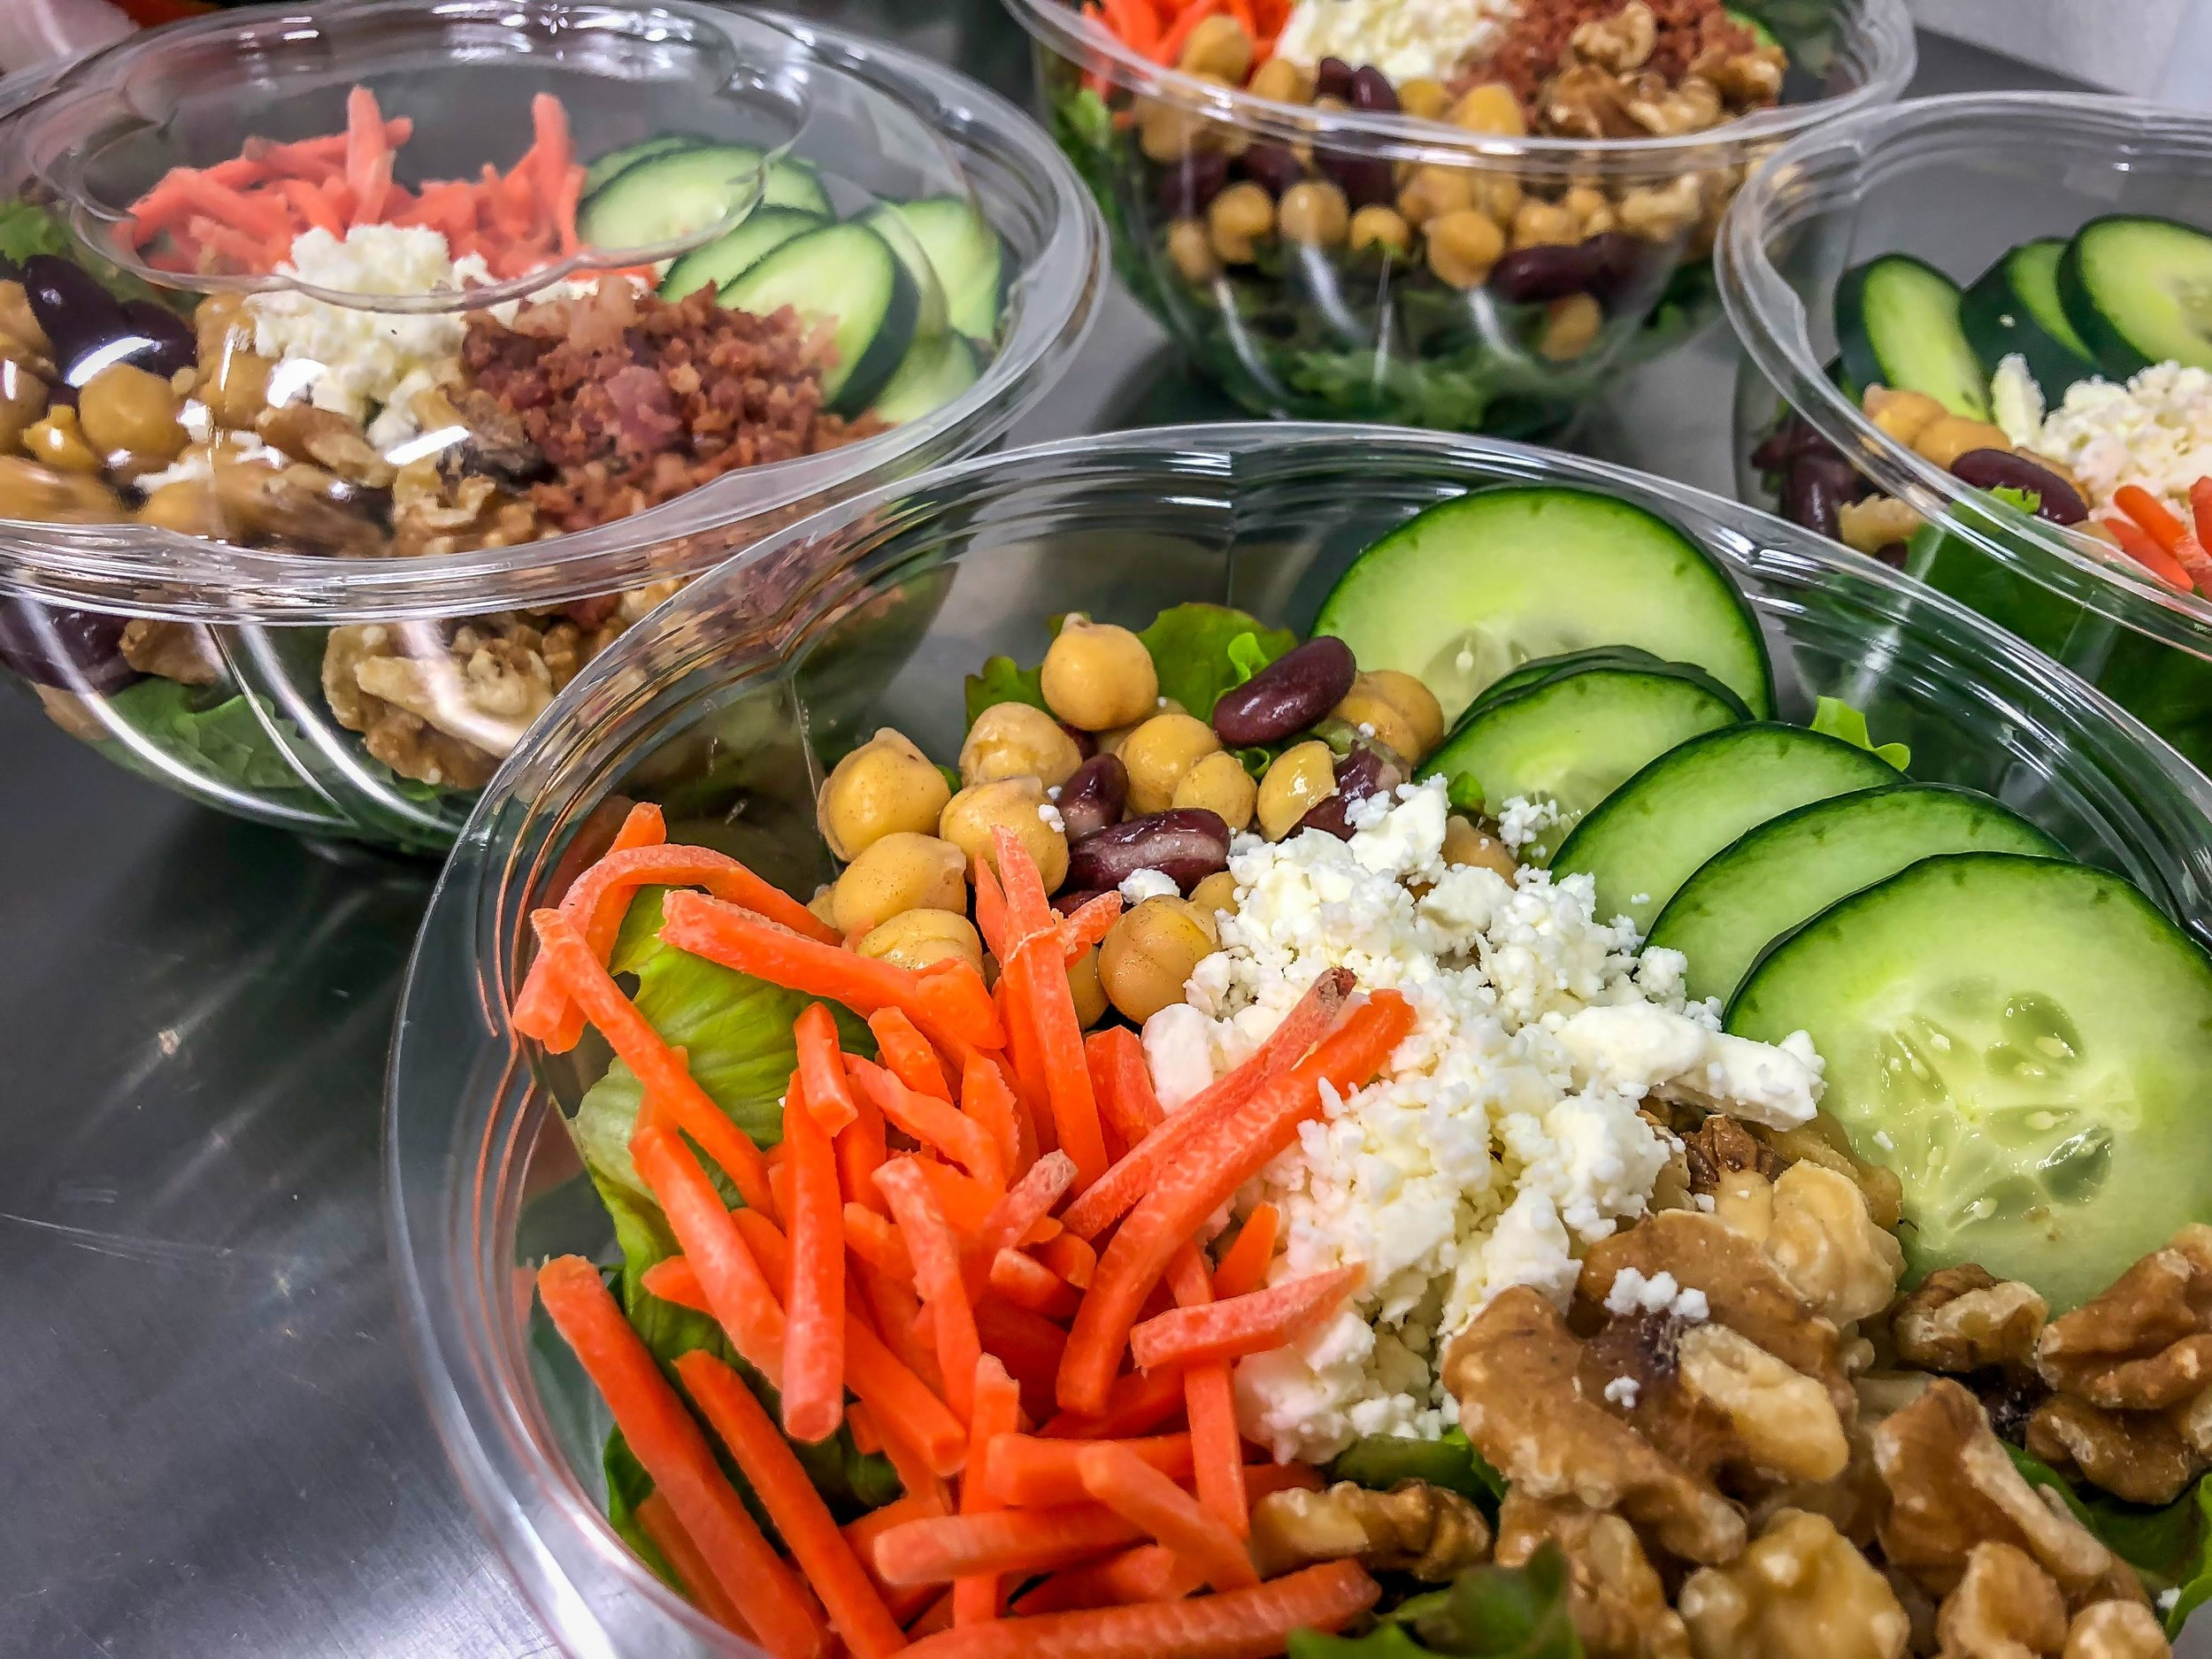 THE WEEKLYHARVEST   A fresh, crisp lettuce mix grown on our farm in Meriden, CT, paired with cucumber. our homemade bean medley (red and garbanzo beans), carrots, chopped walnuts, and feta cheese. Protein and homemade dressings available.